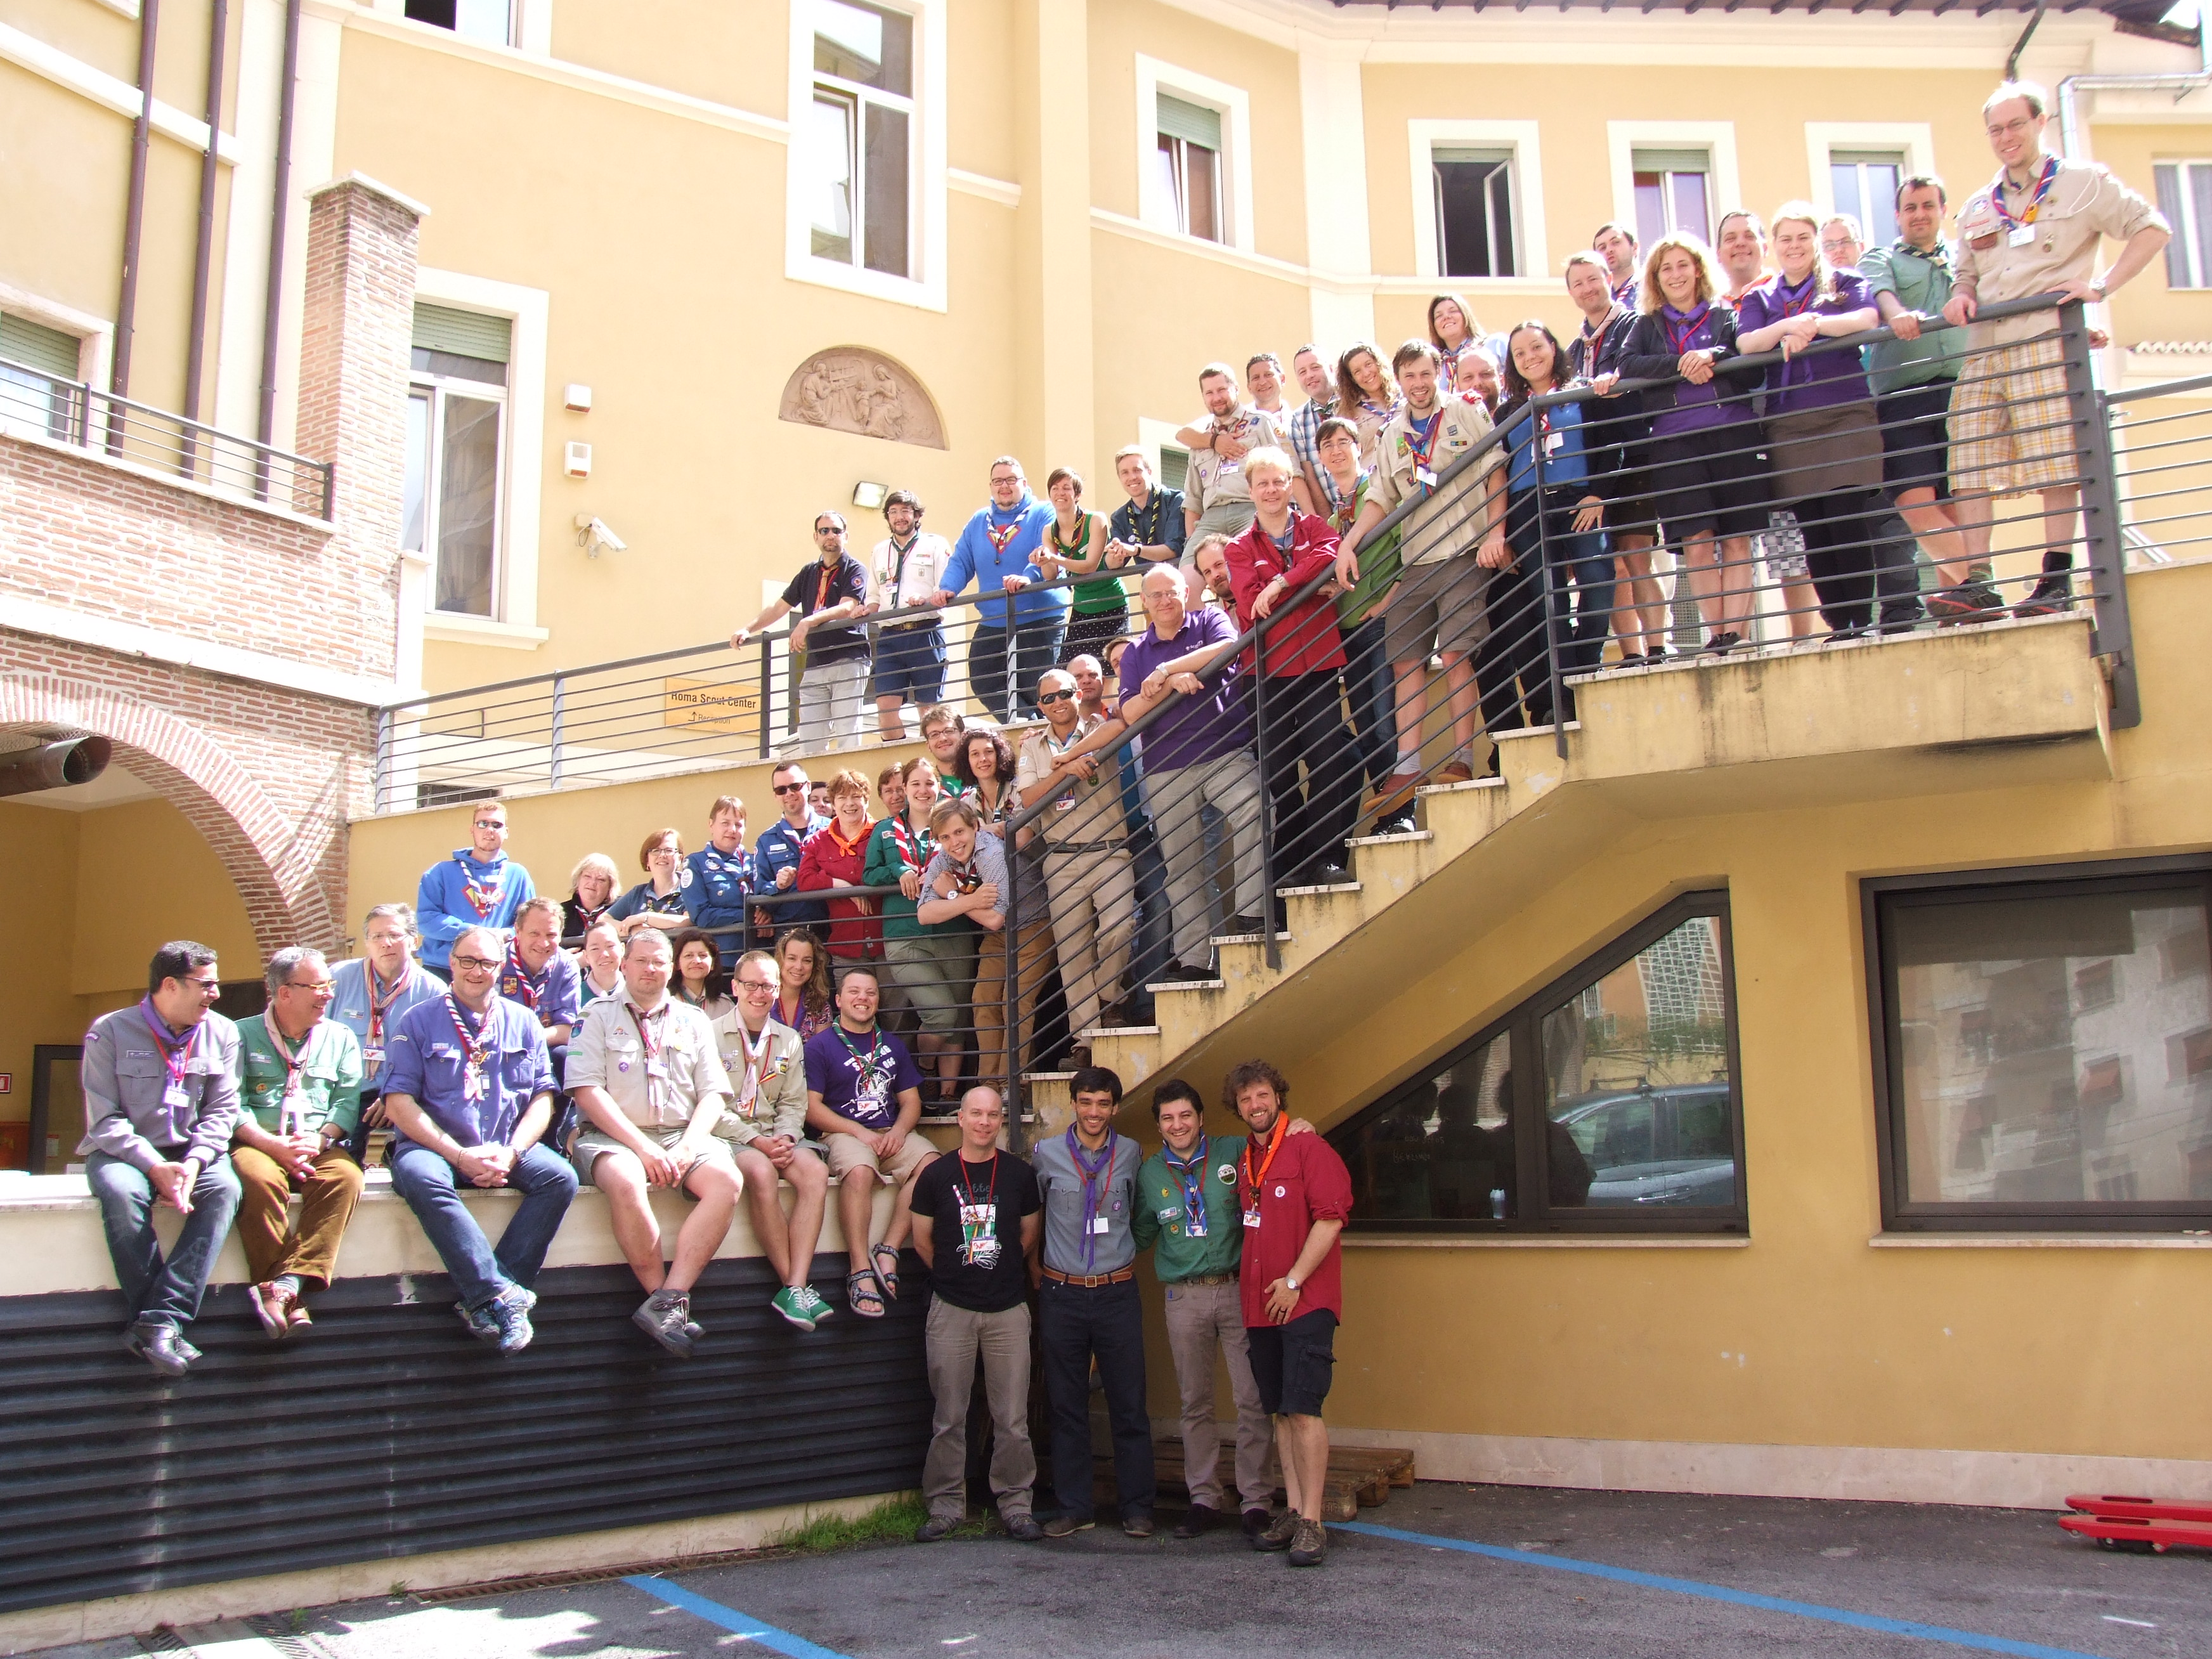 TNCM 2013 in Rome: the traditional Family Photo